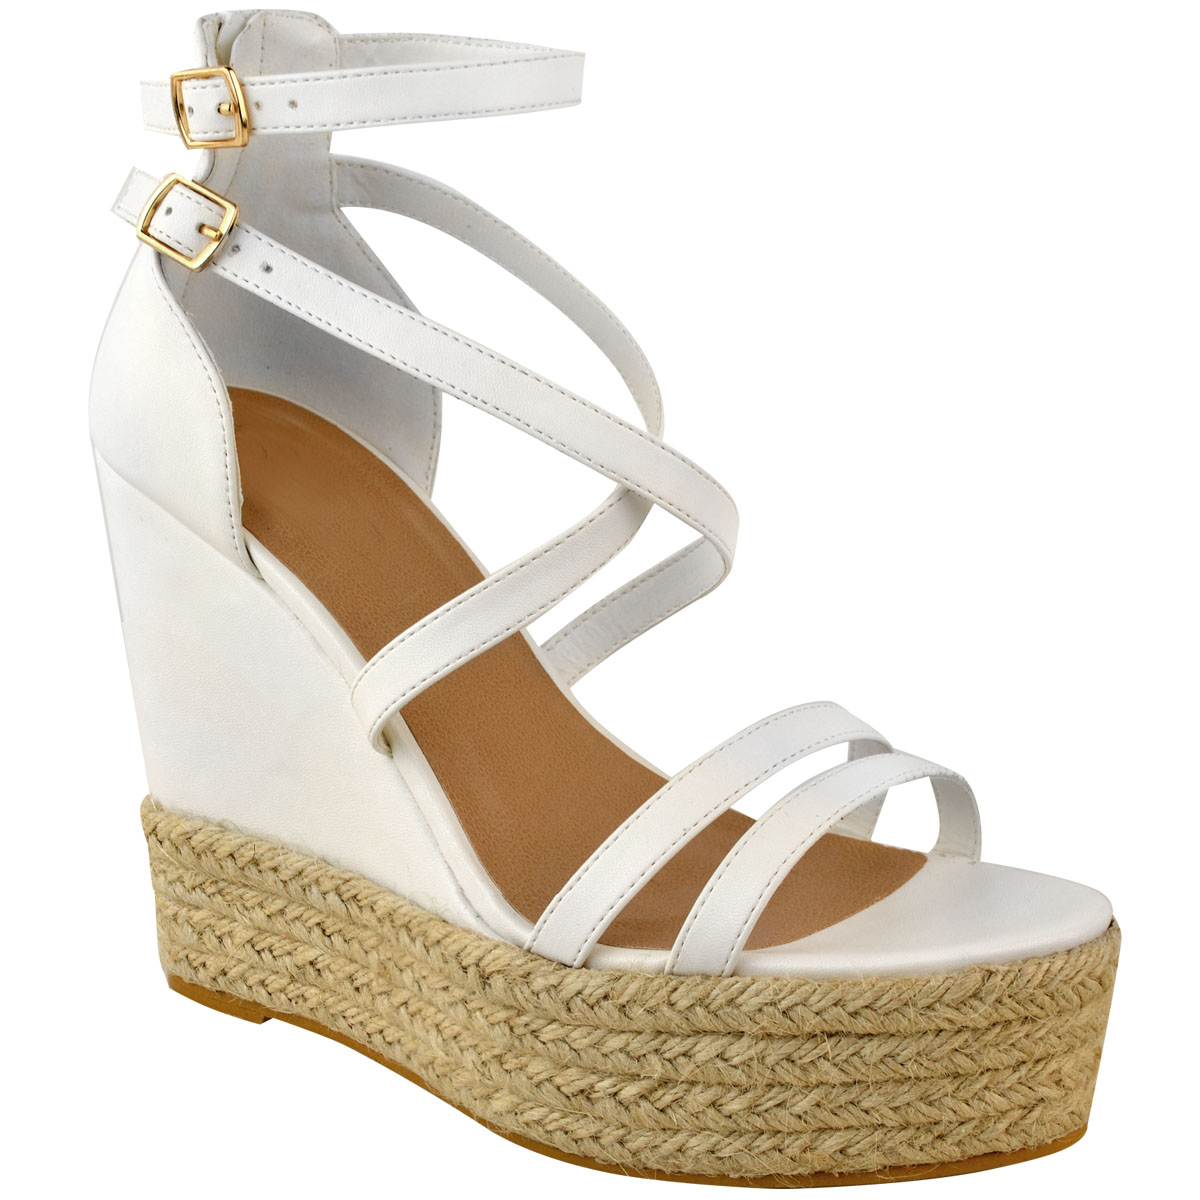 New-Womens-Ladies-Wedge-Espadrille-Sandals-Strappy-Rose-Gold-Summer-Shoes-Size thumbnail 13